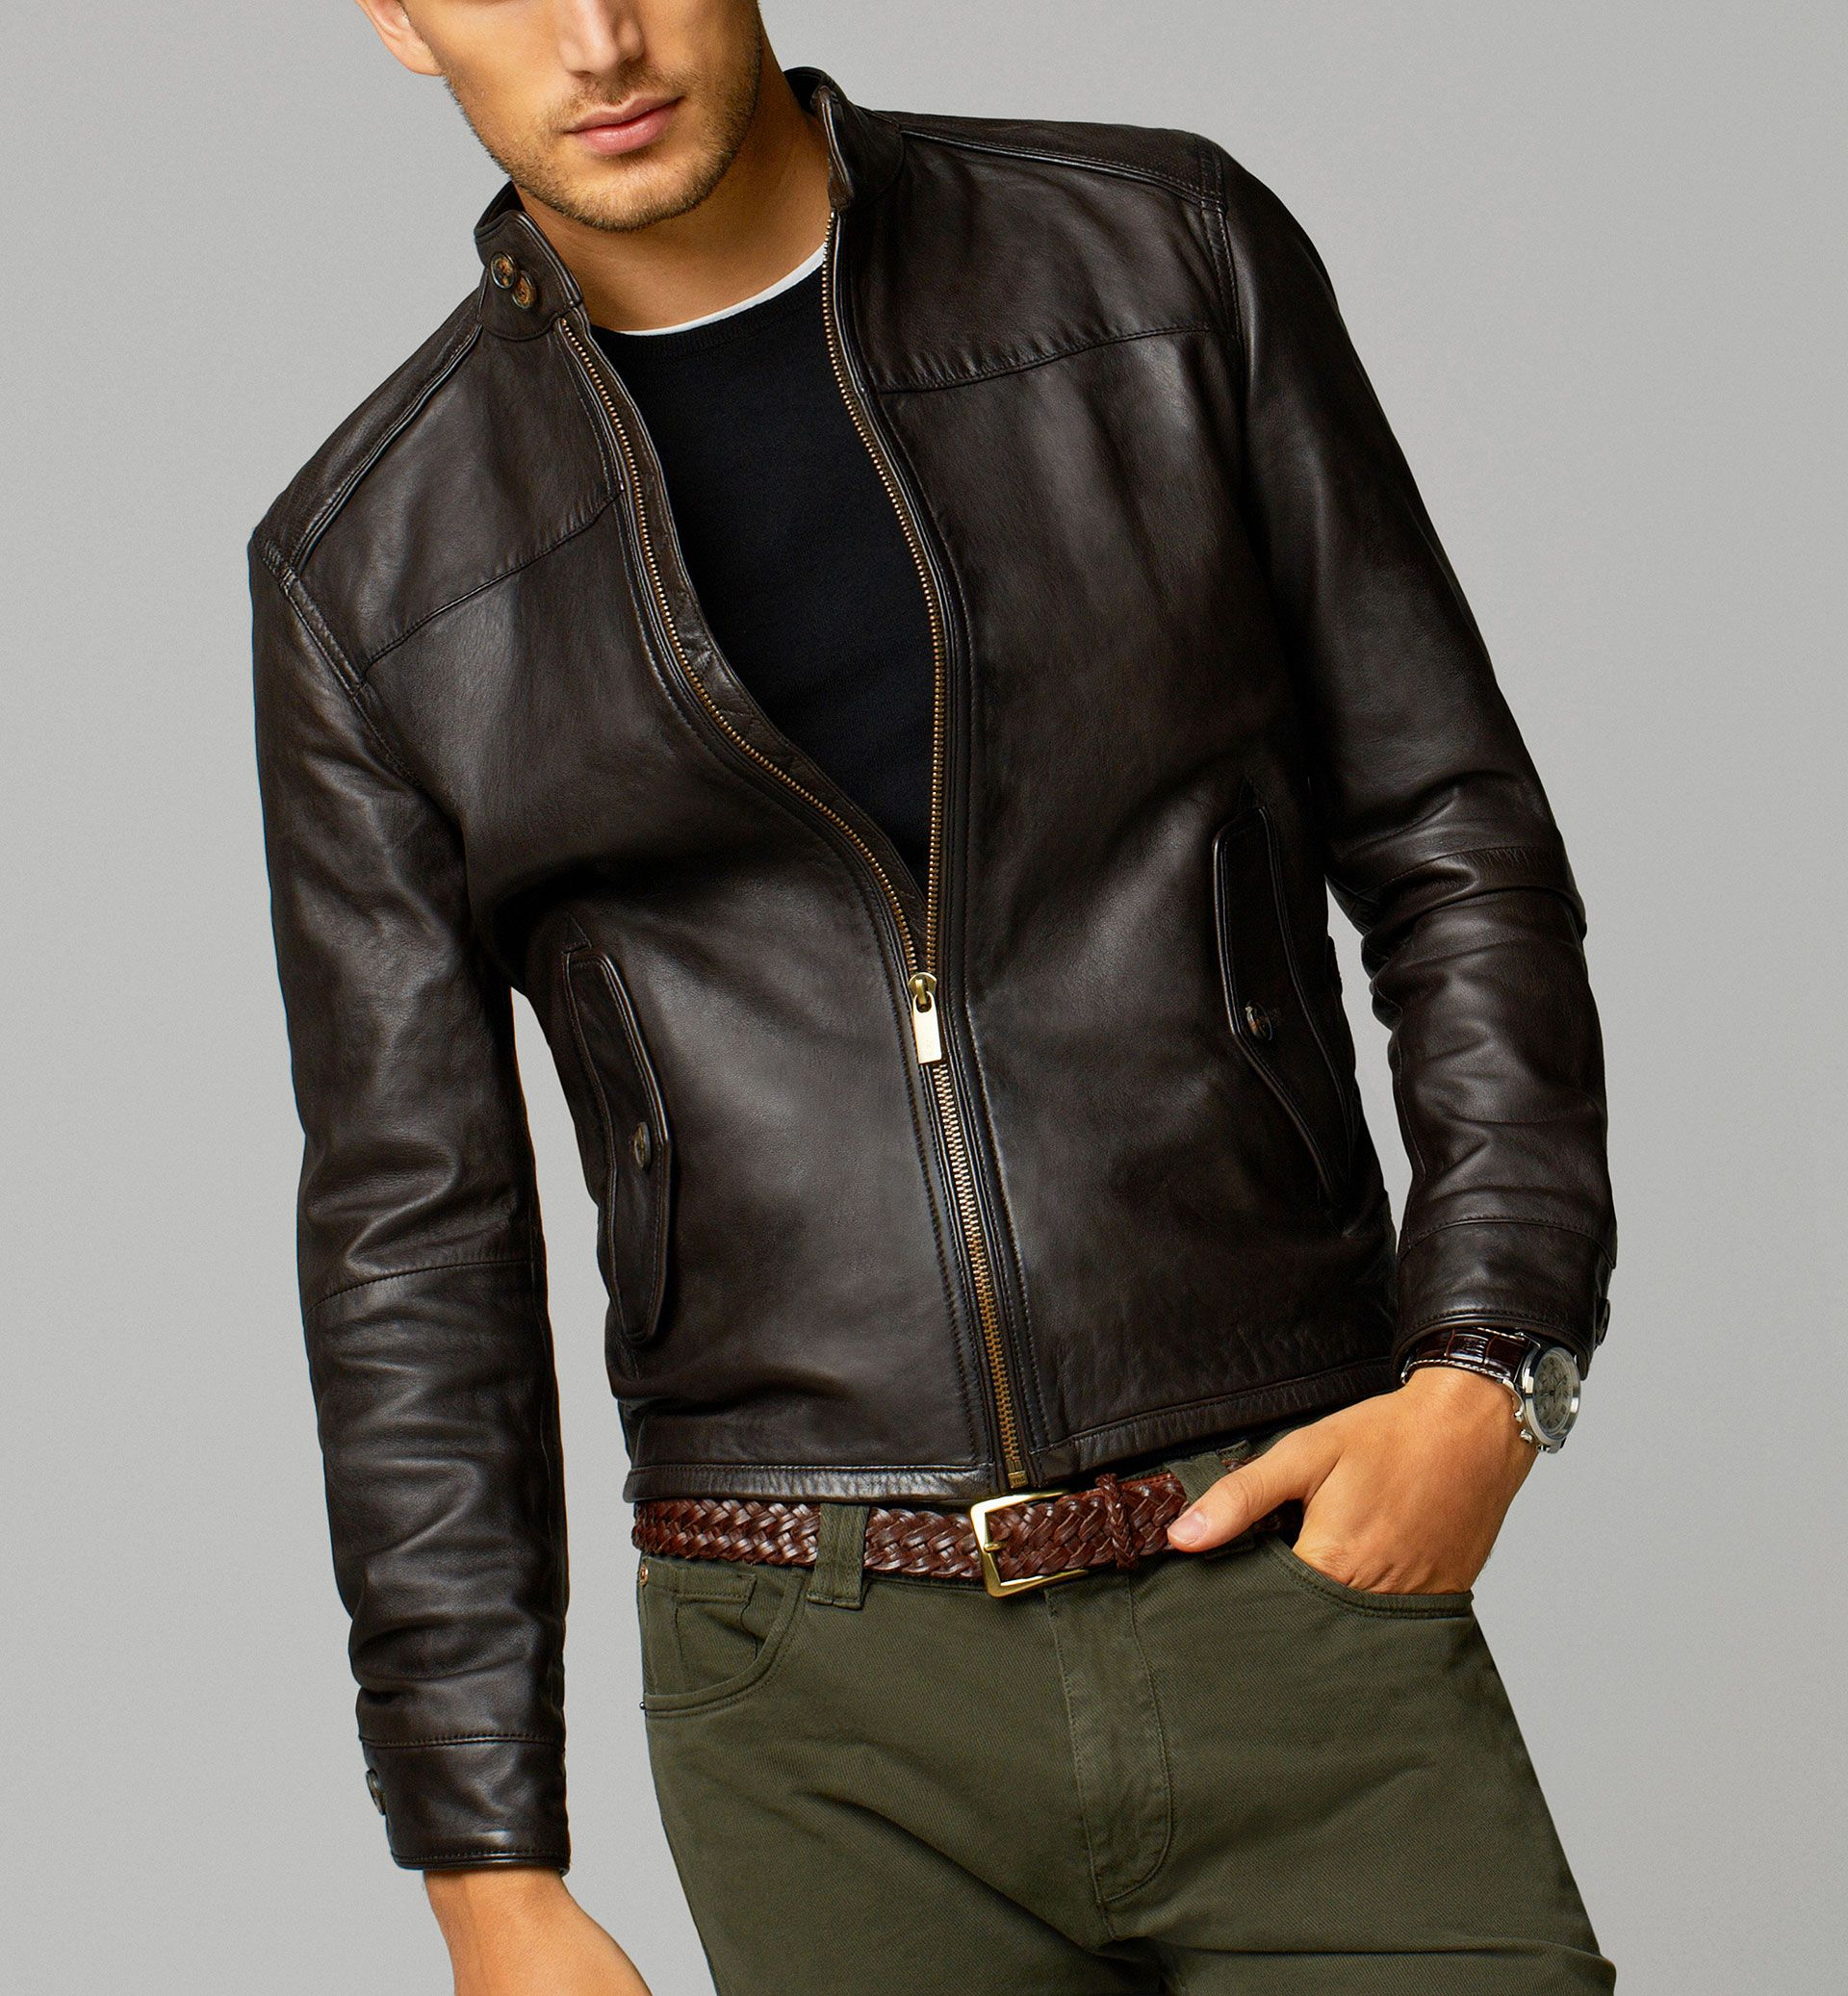 Jacket With Perforated Elbow Patches 380 00 Stylish Leather Jacket Leather Jacket Men Style Leather Jacket Outfit Men [ 2074 x 1920 Pixel ]